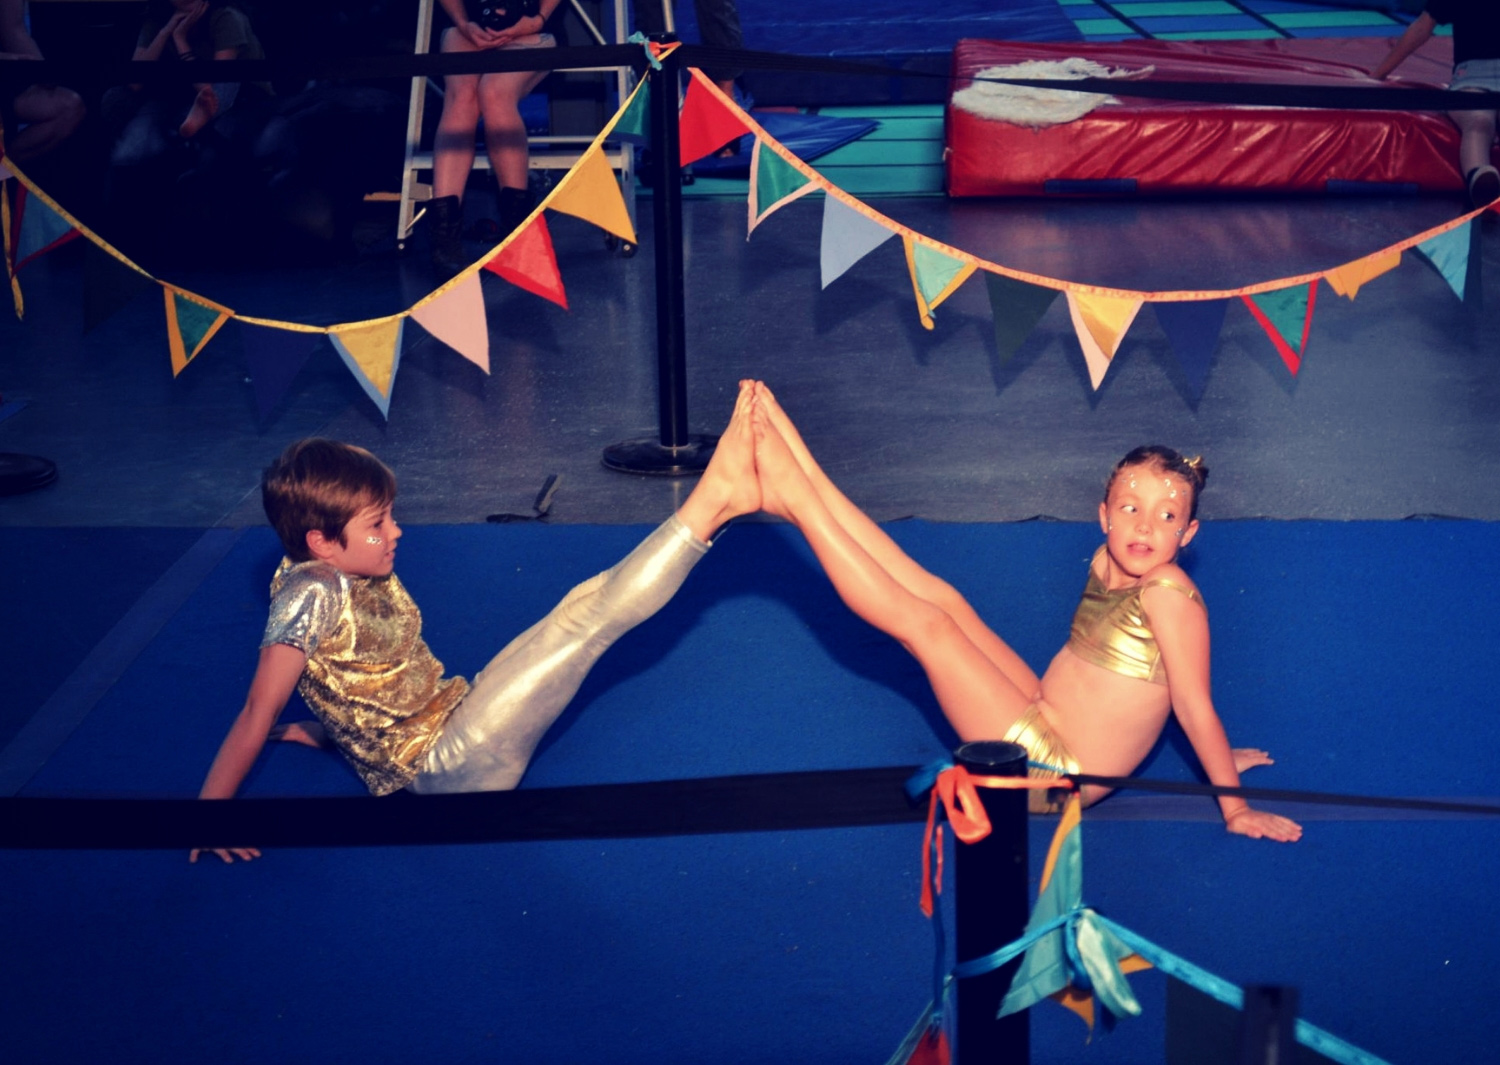 circus-arts-byron-bay-cicus-play-5-7yrs-kids-class-1